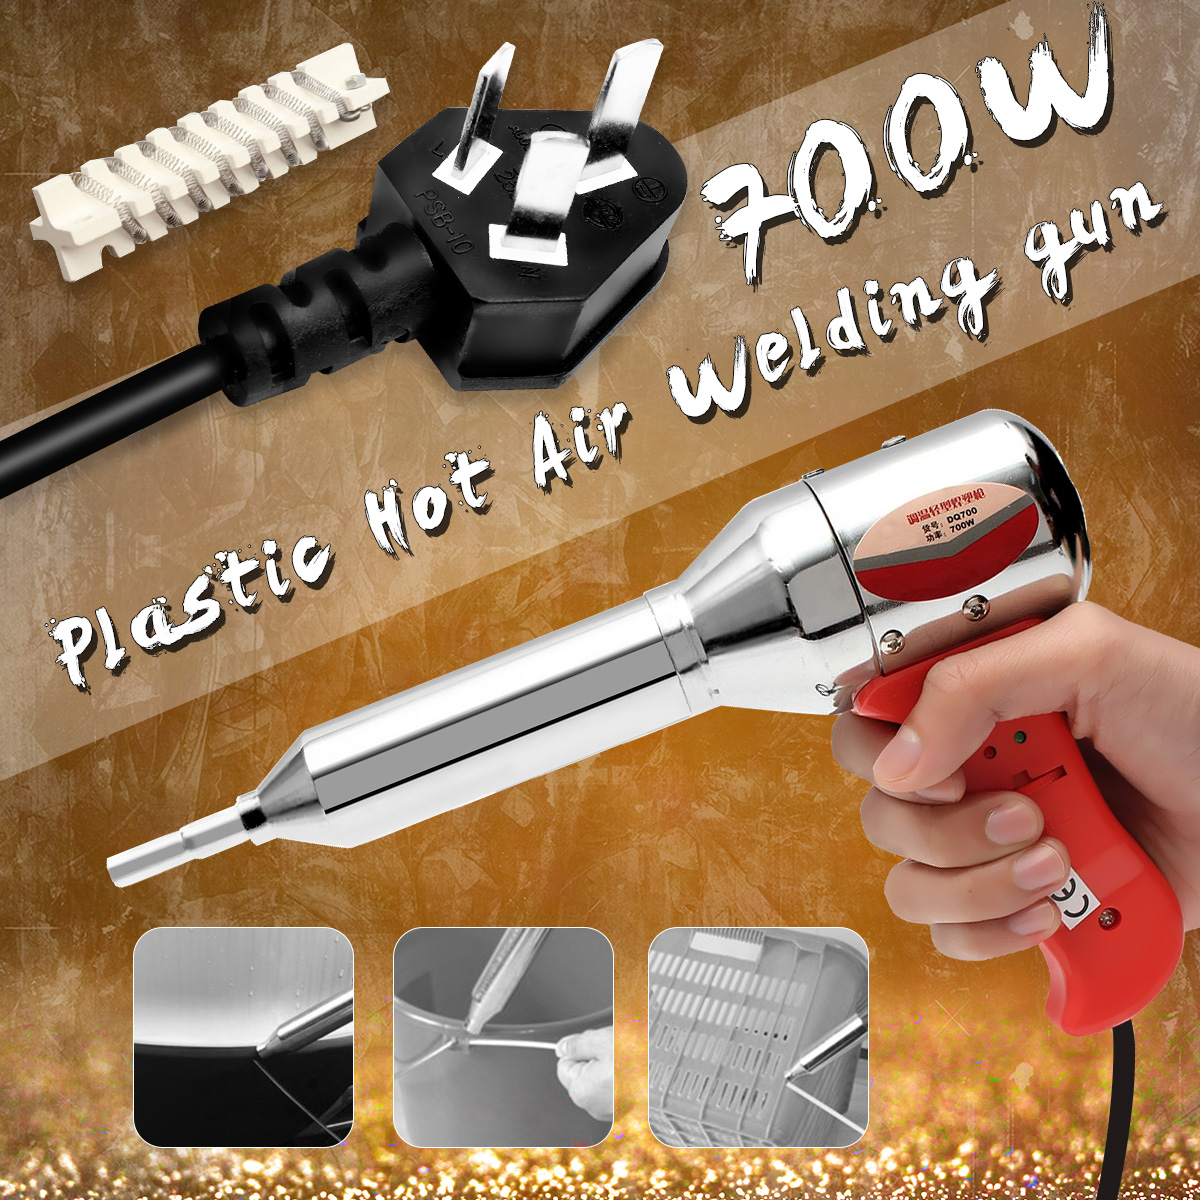 Hot Sale Portable 700W AC 220-240V Red Plastic Hot Air Welding Gun Temperature Heat 100-450 Degree With Ceramic Heater